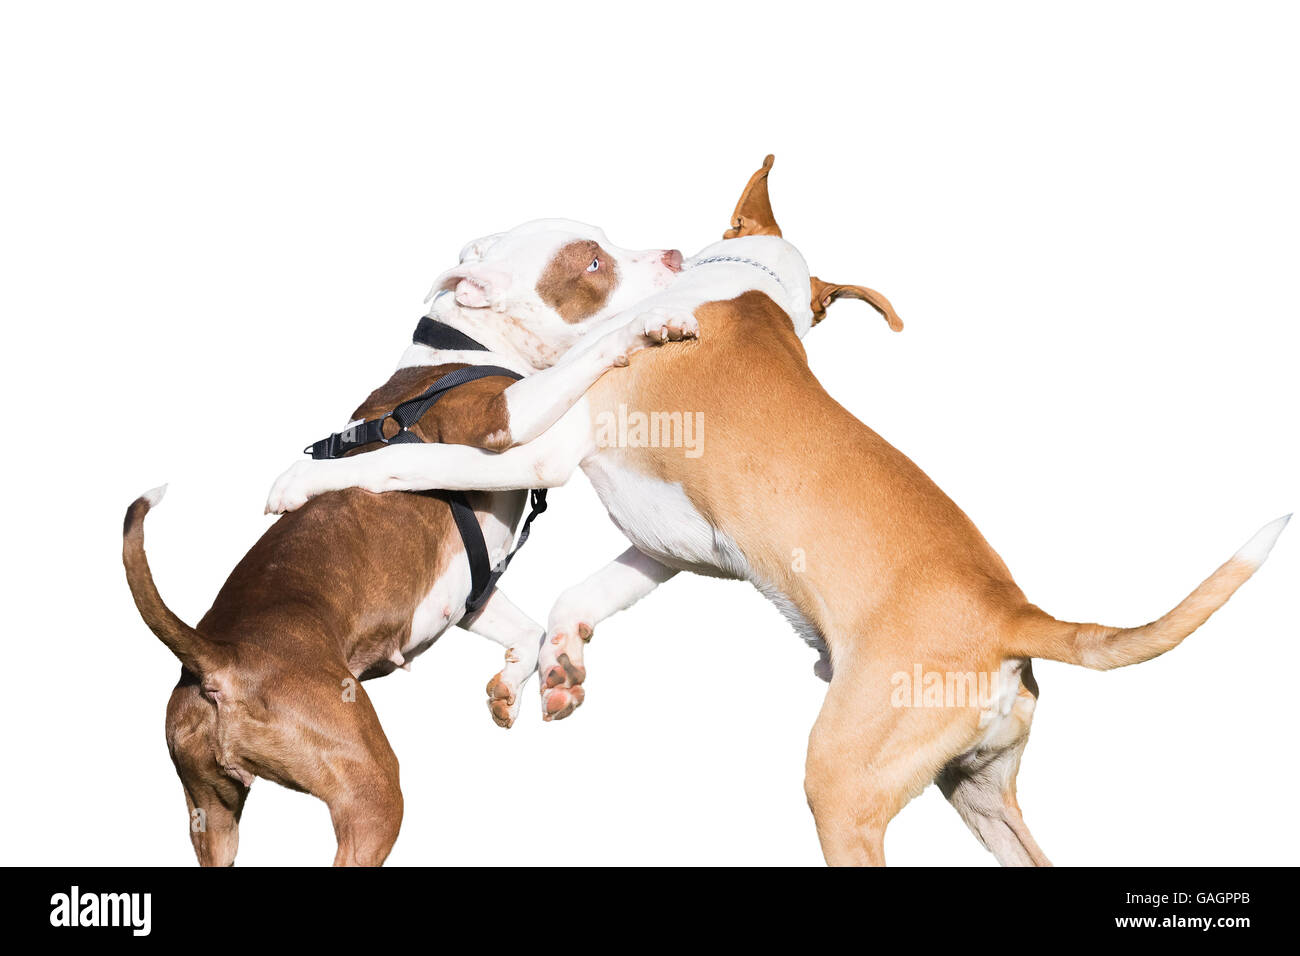 Dogs fight isolated on white. - Stock Image